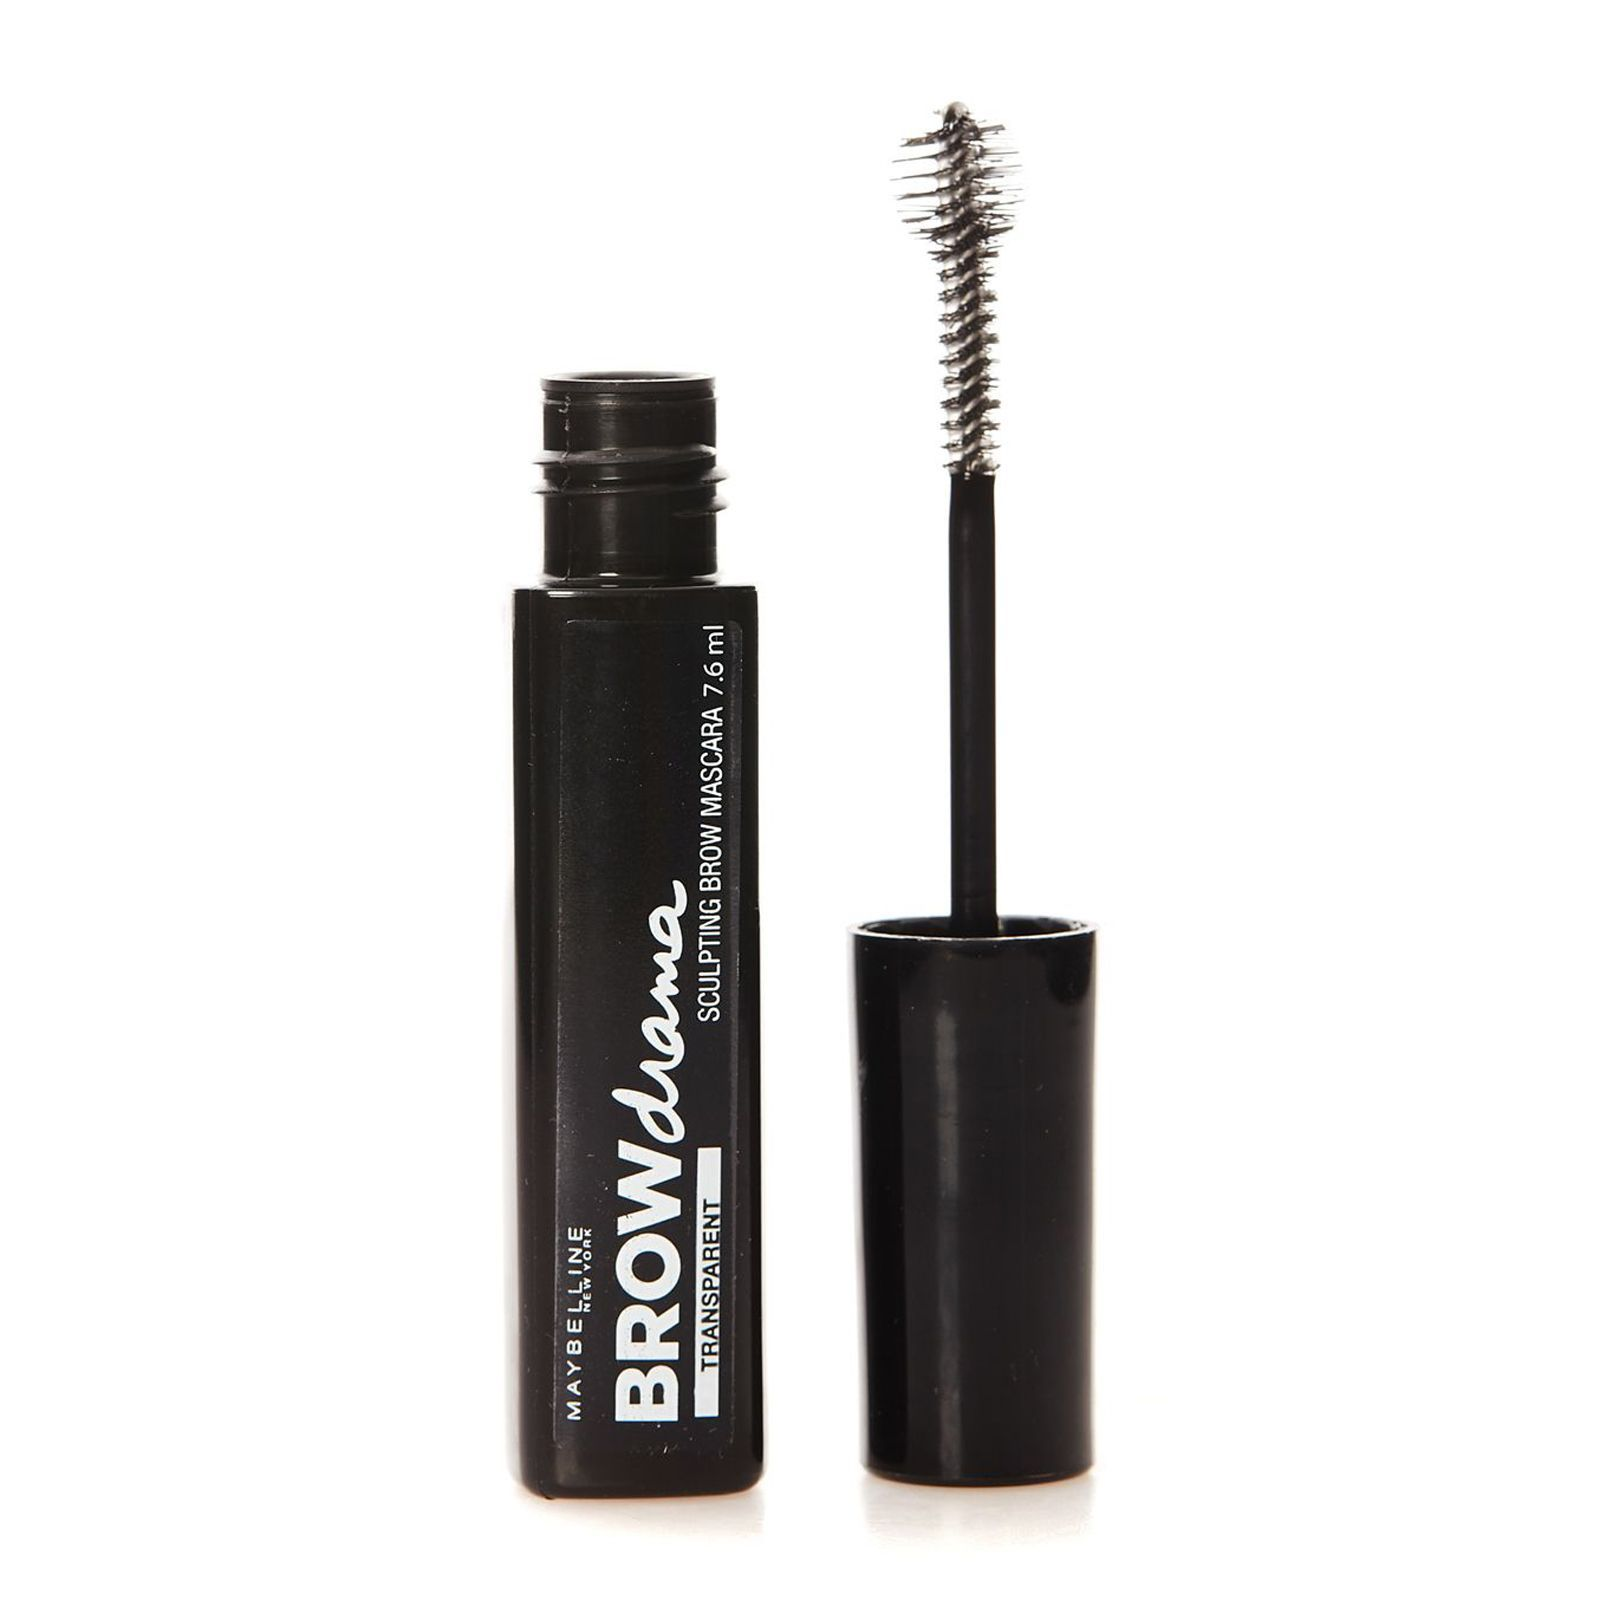 Maybelline Brown Drama